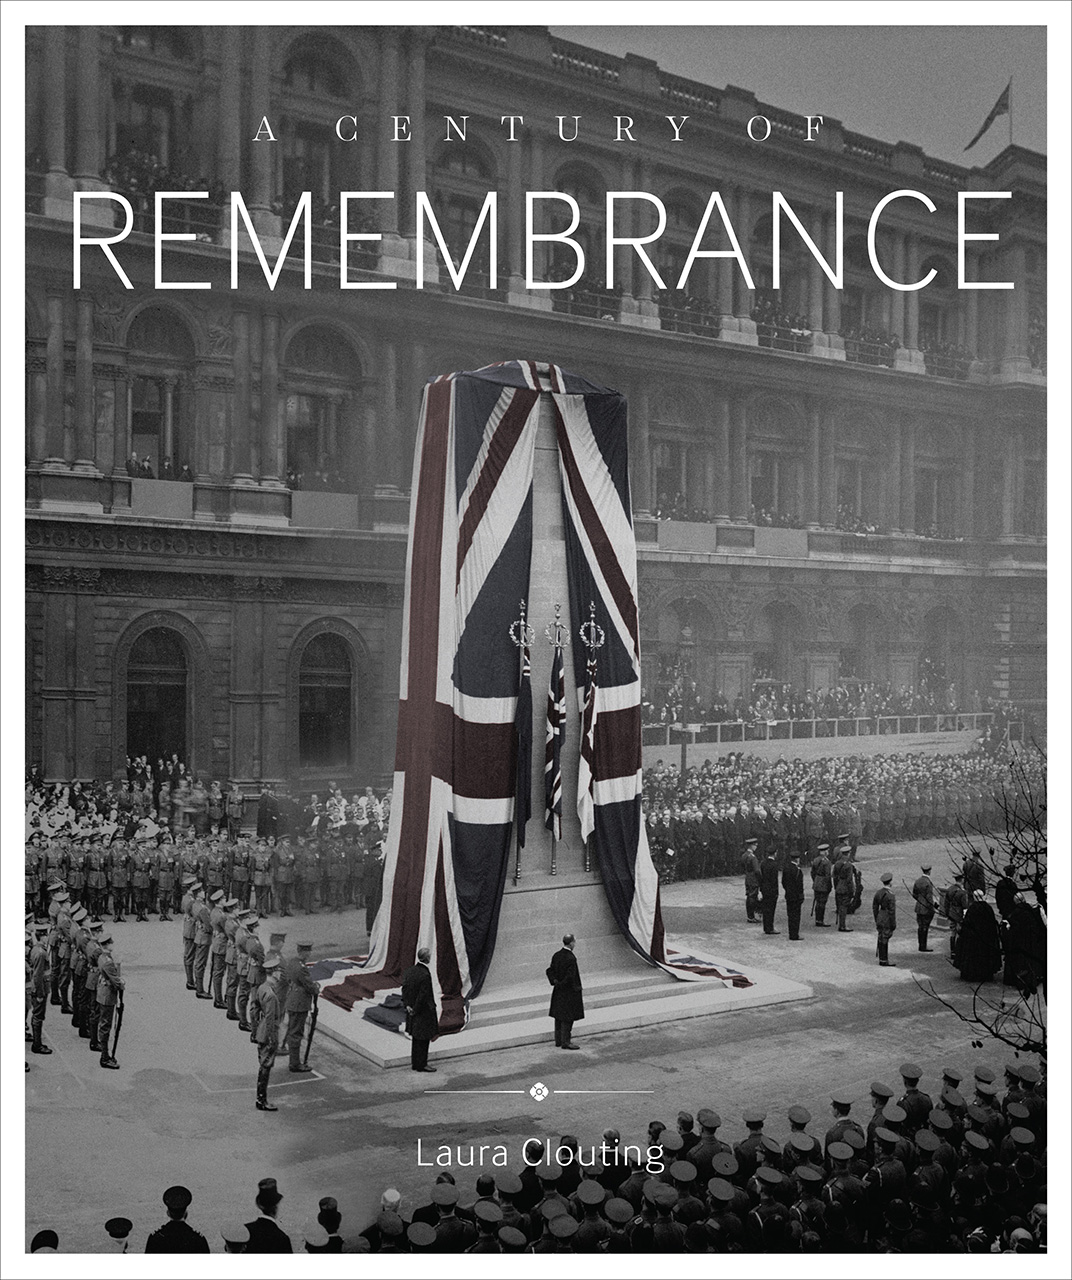 A Century of Remembrance